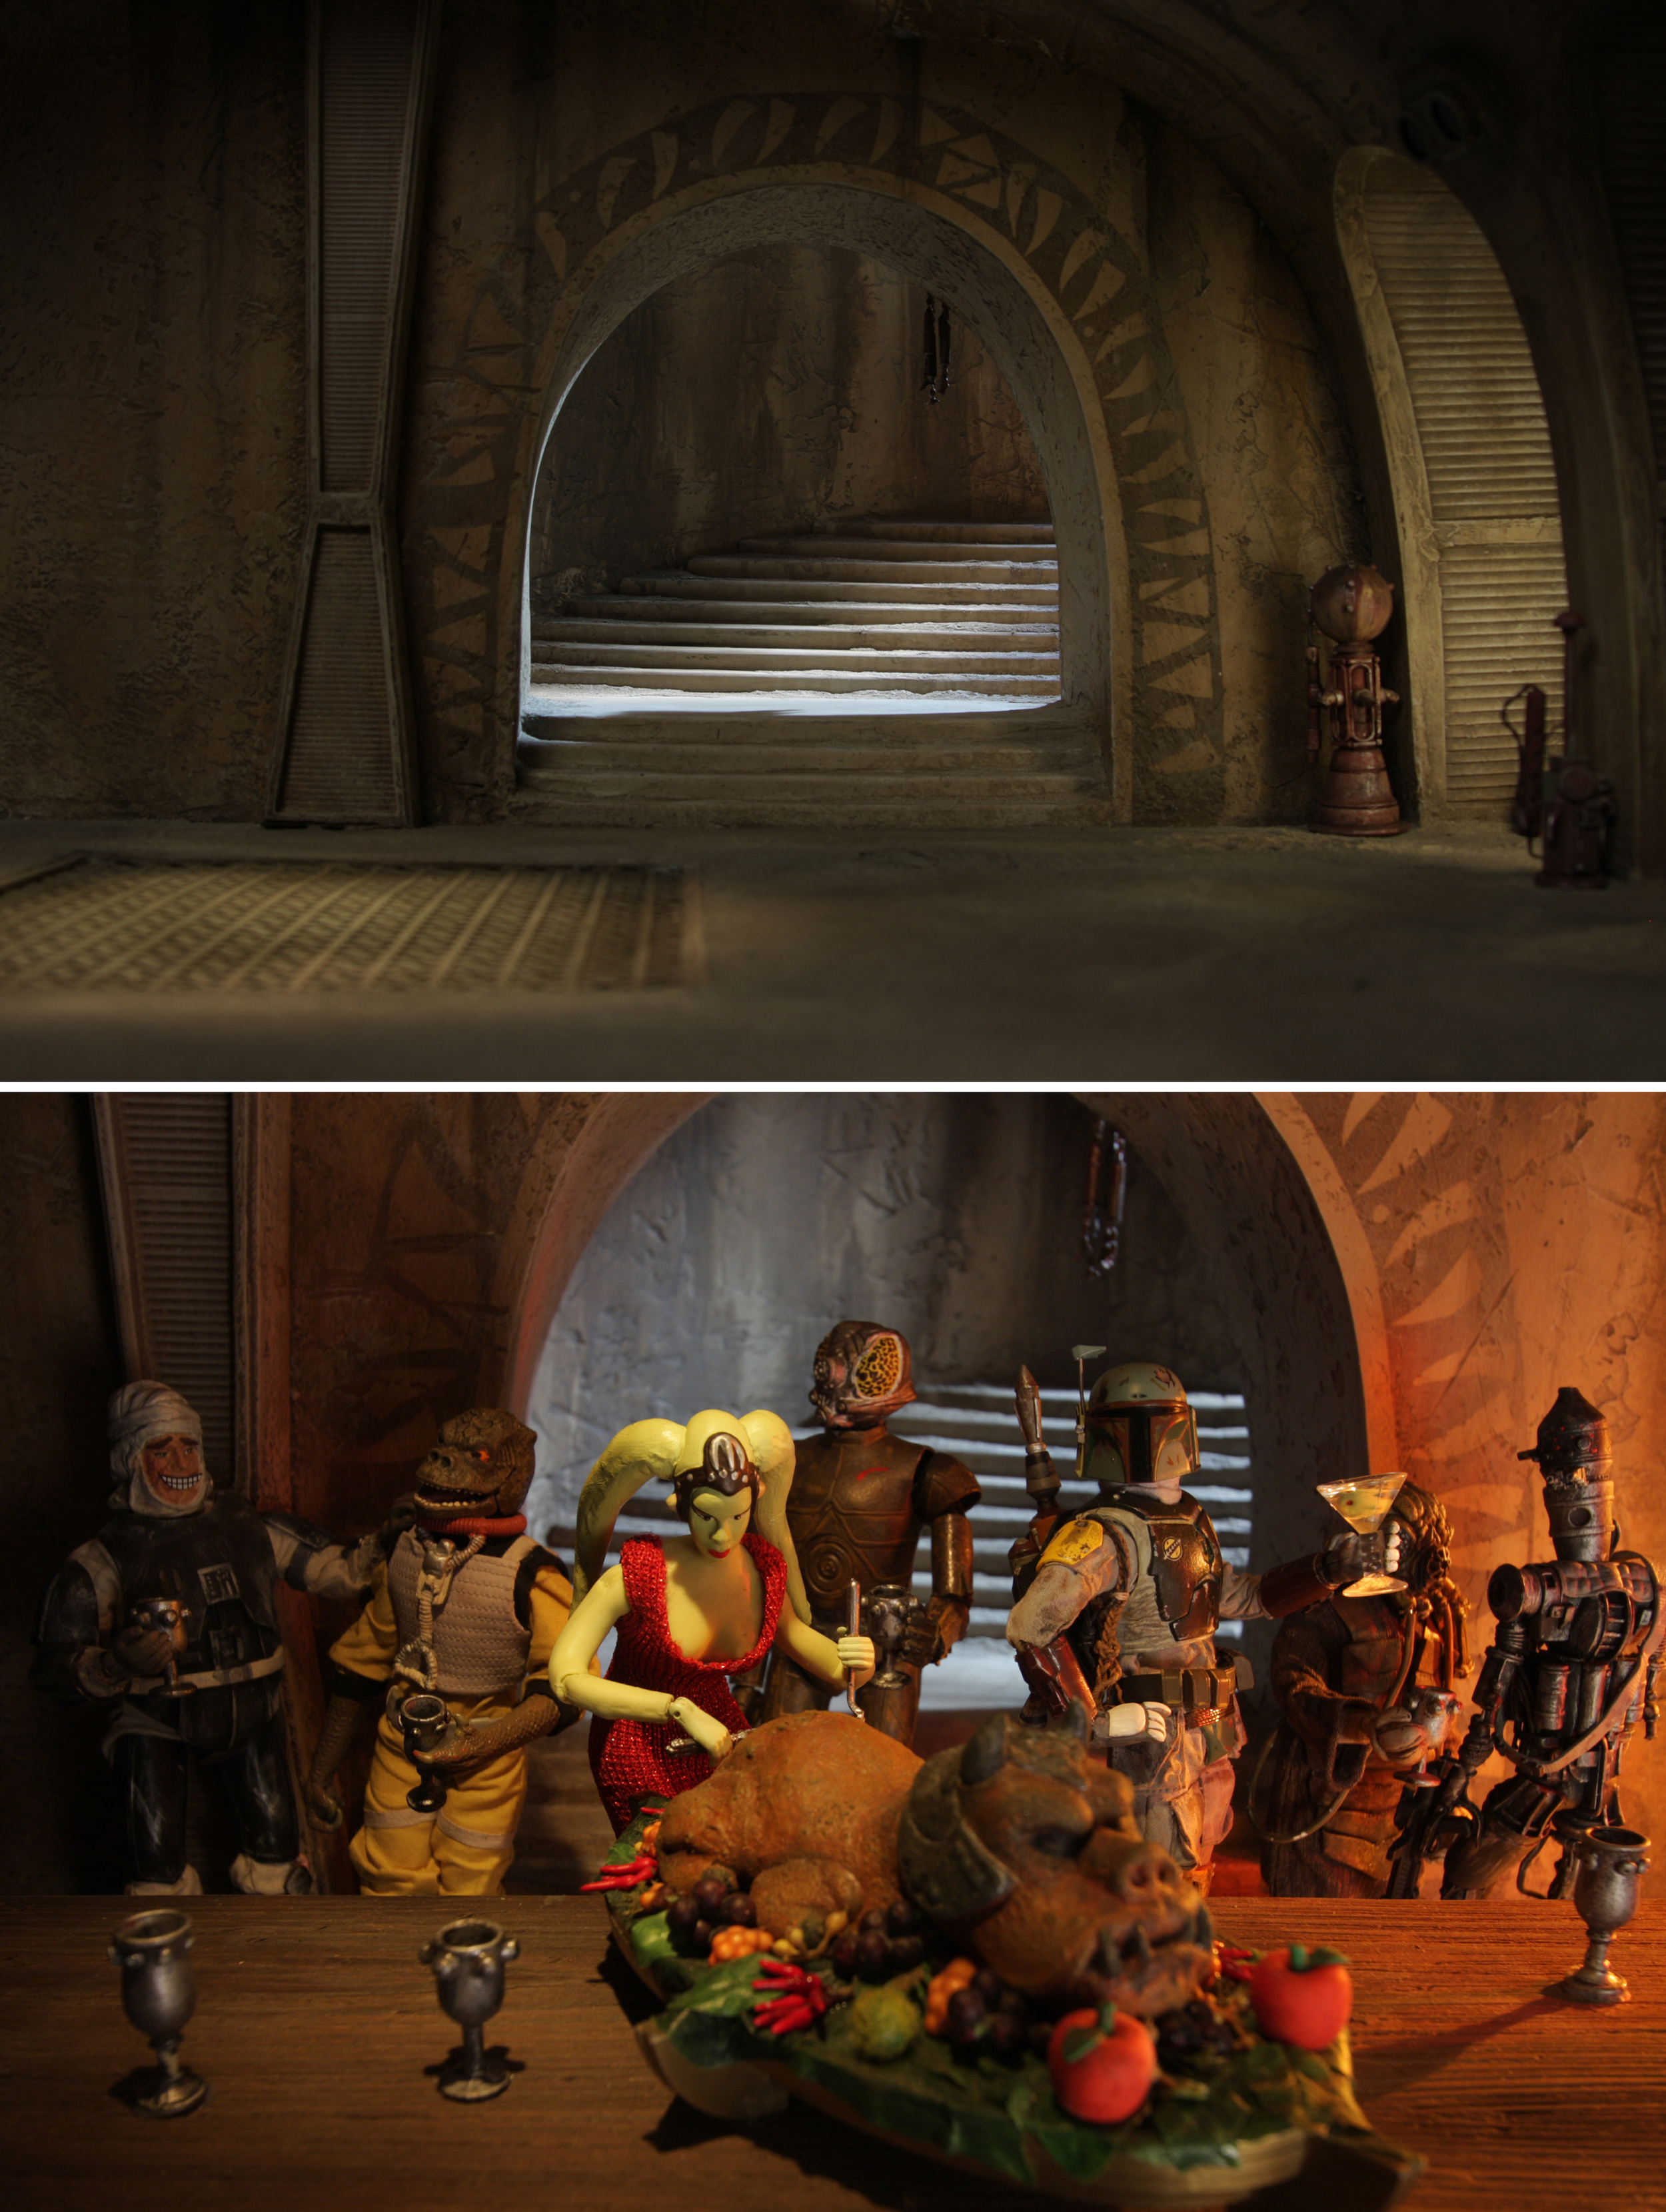 Robot Chicken Star Wars 3 Image 58.jpg